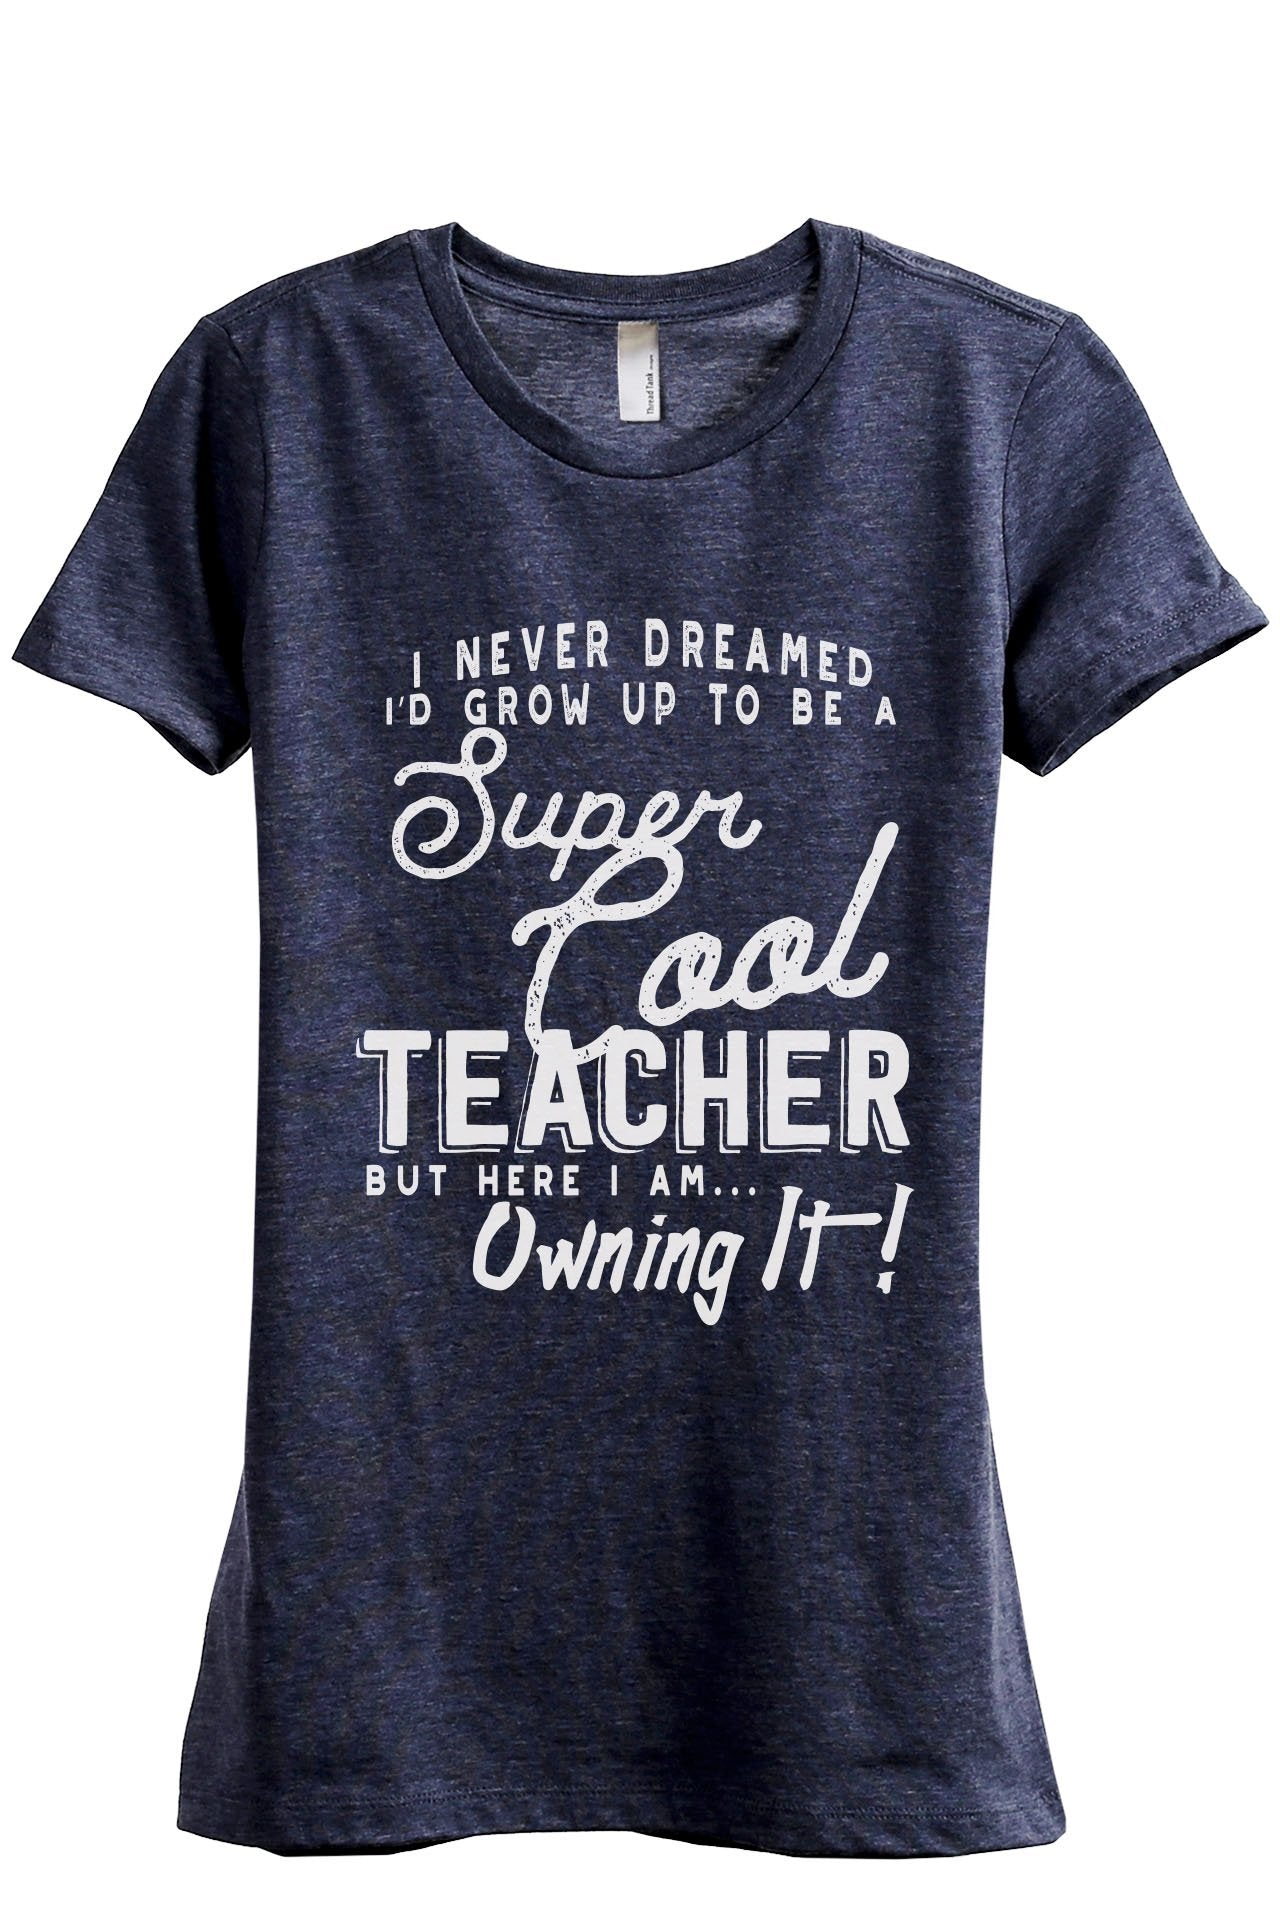 Super Cool Teacher Women's Relaxed Crewneck T-Shirt Top Tee Heather Navy